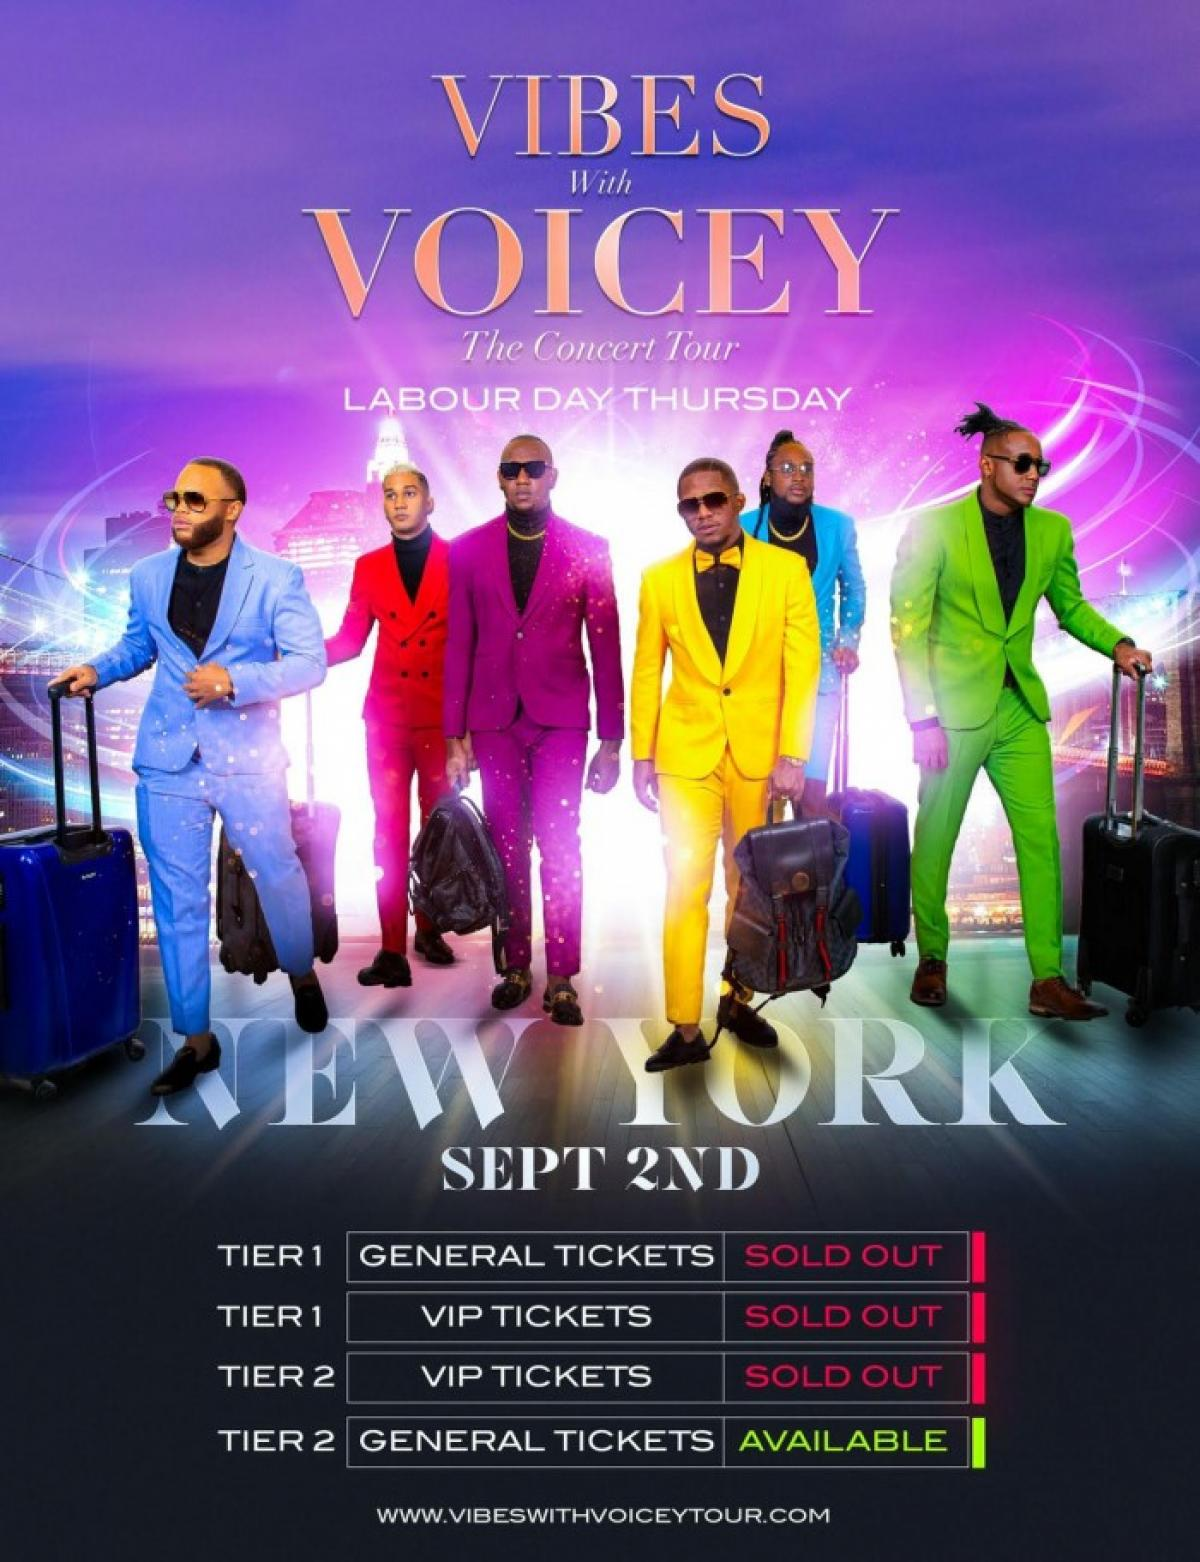 Vibes With Voicey: The Concert Tour New York flyer or graphic.